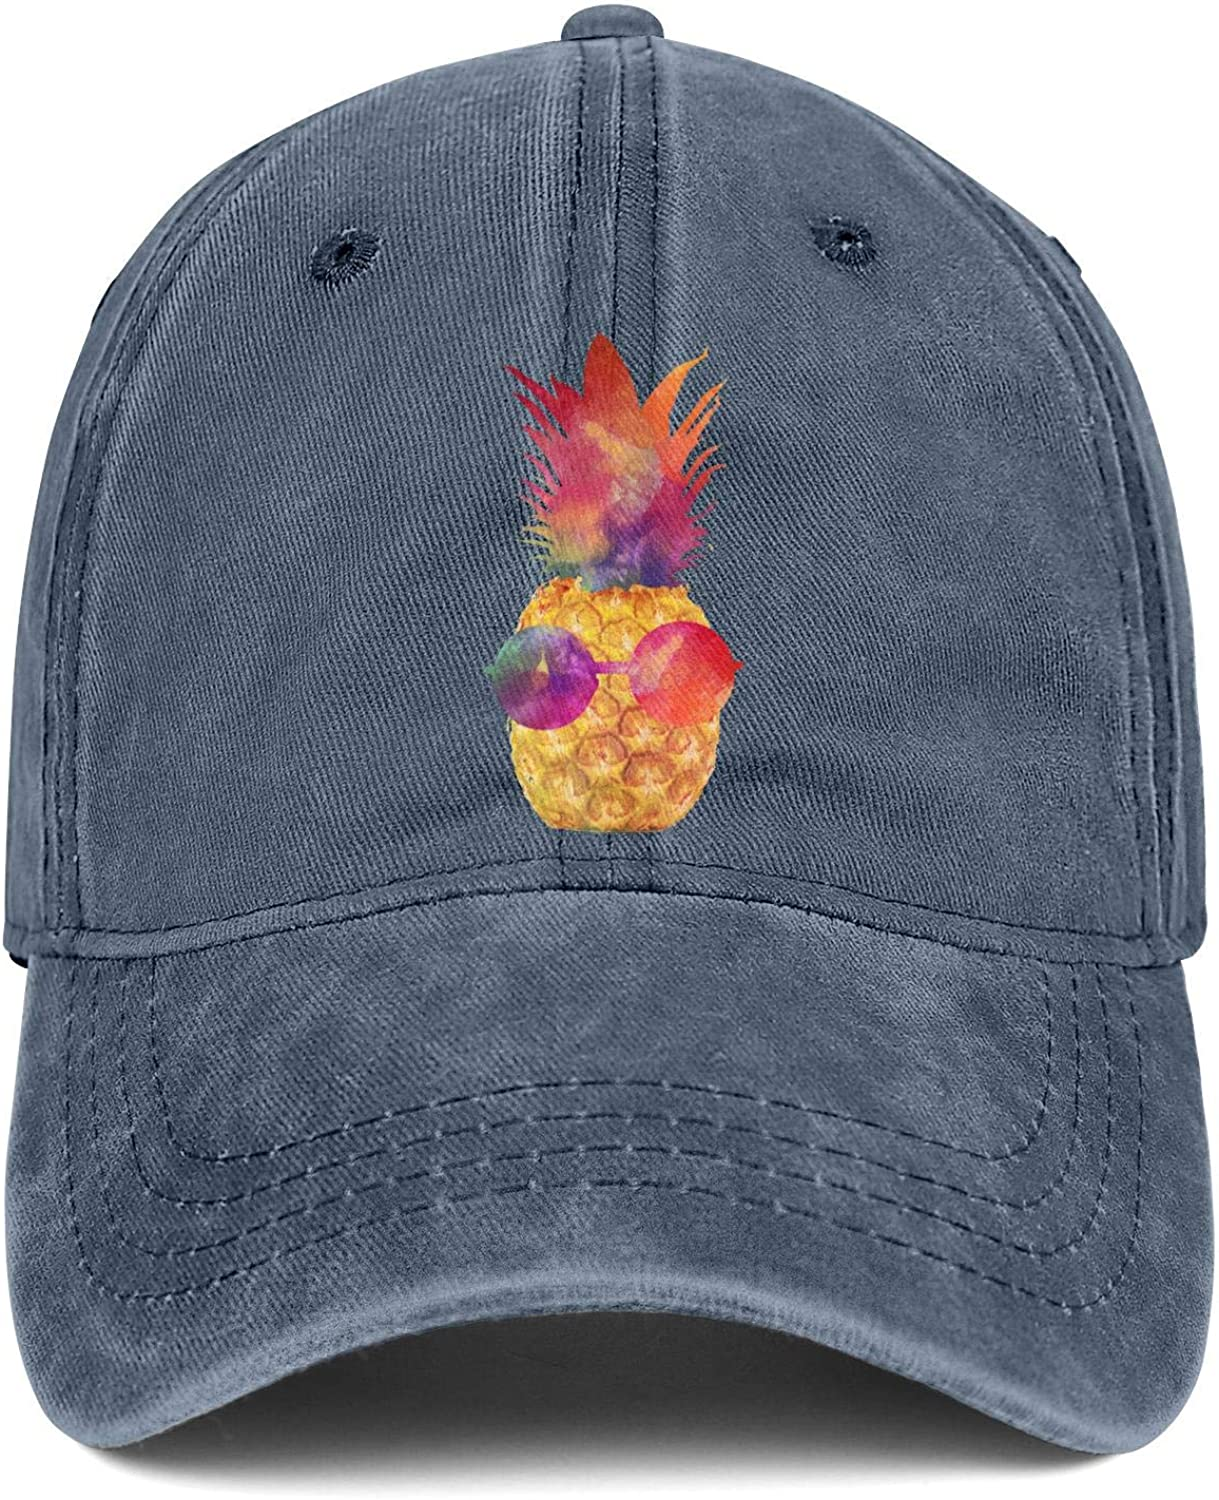 Be a Pineapple Wear Crown Unisex Baseball Cap Breathable Sun Hats Adjustable Trucker Caps Dad-Hat